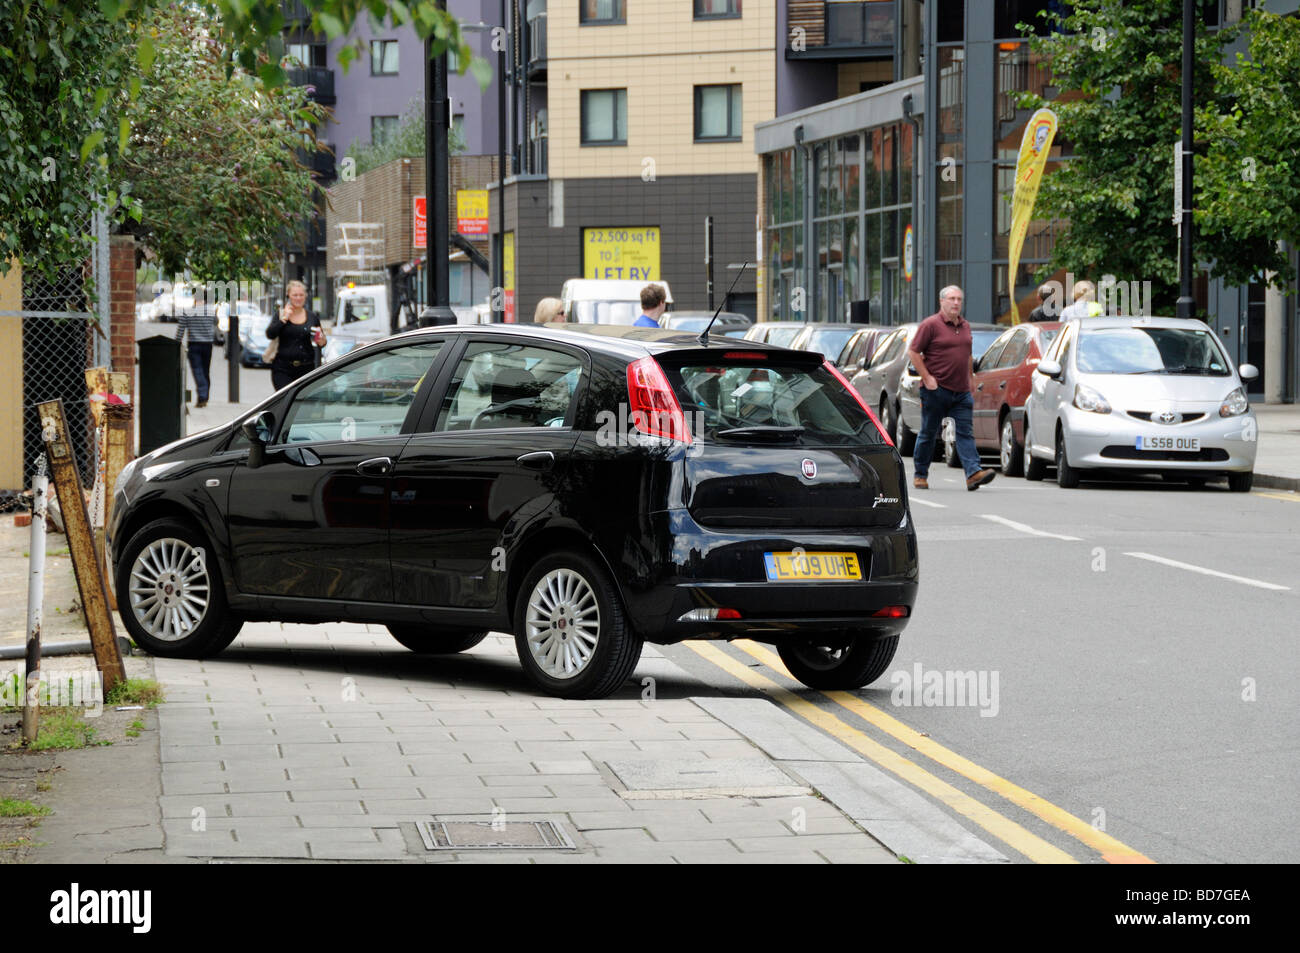 Car parked on pavement Holloway London England UK - Stock Image